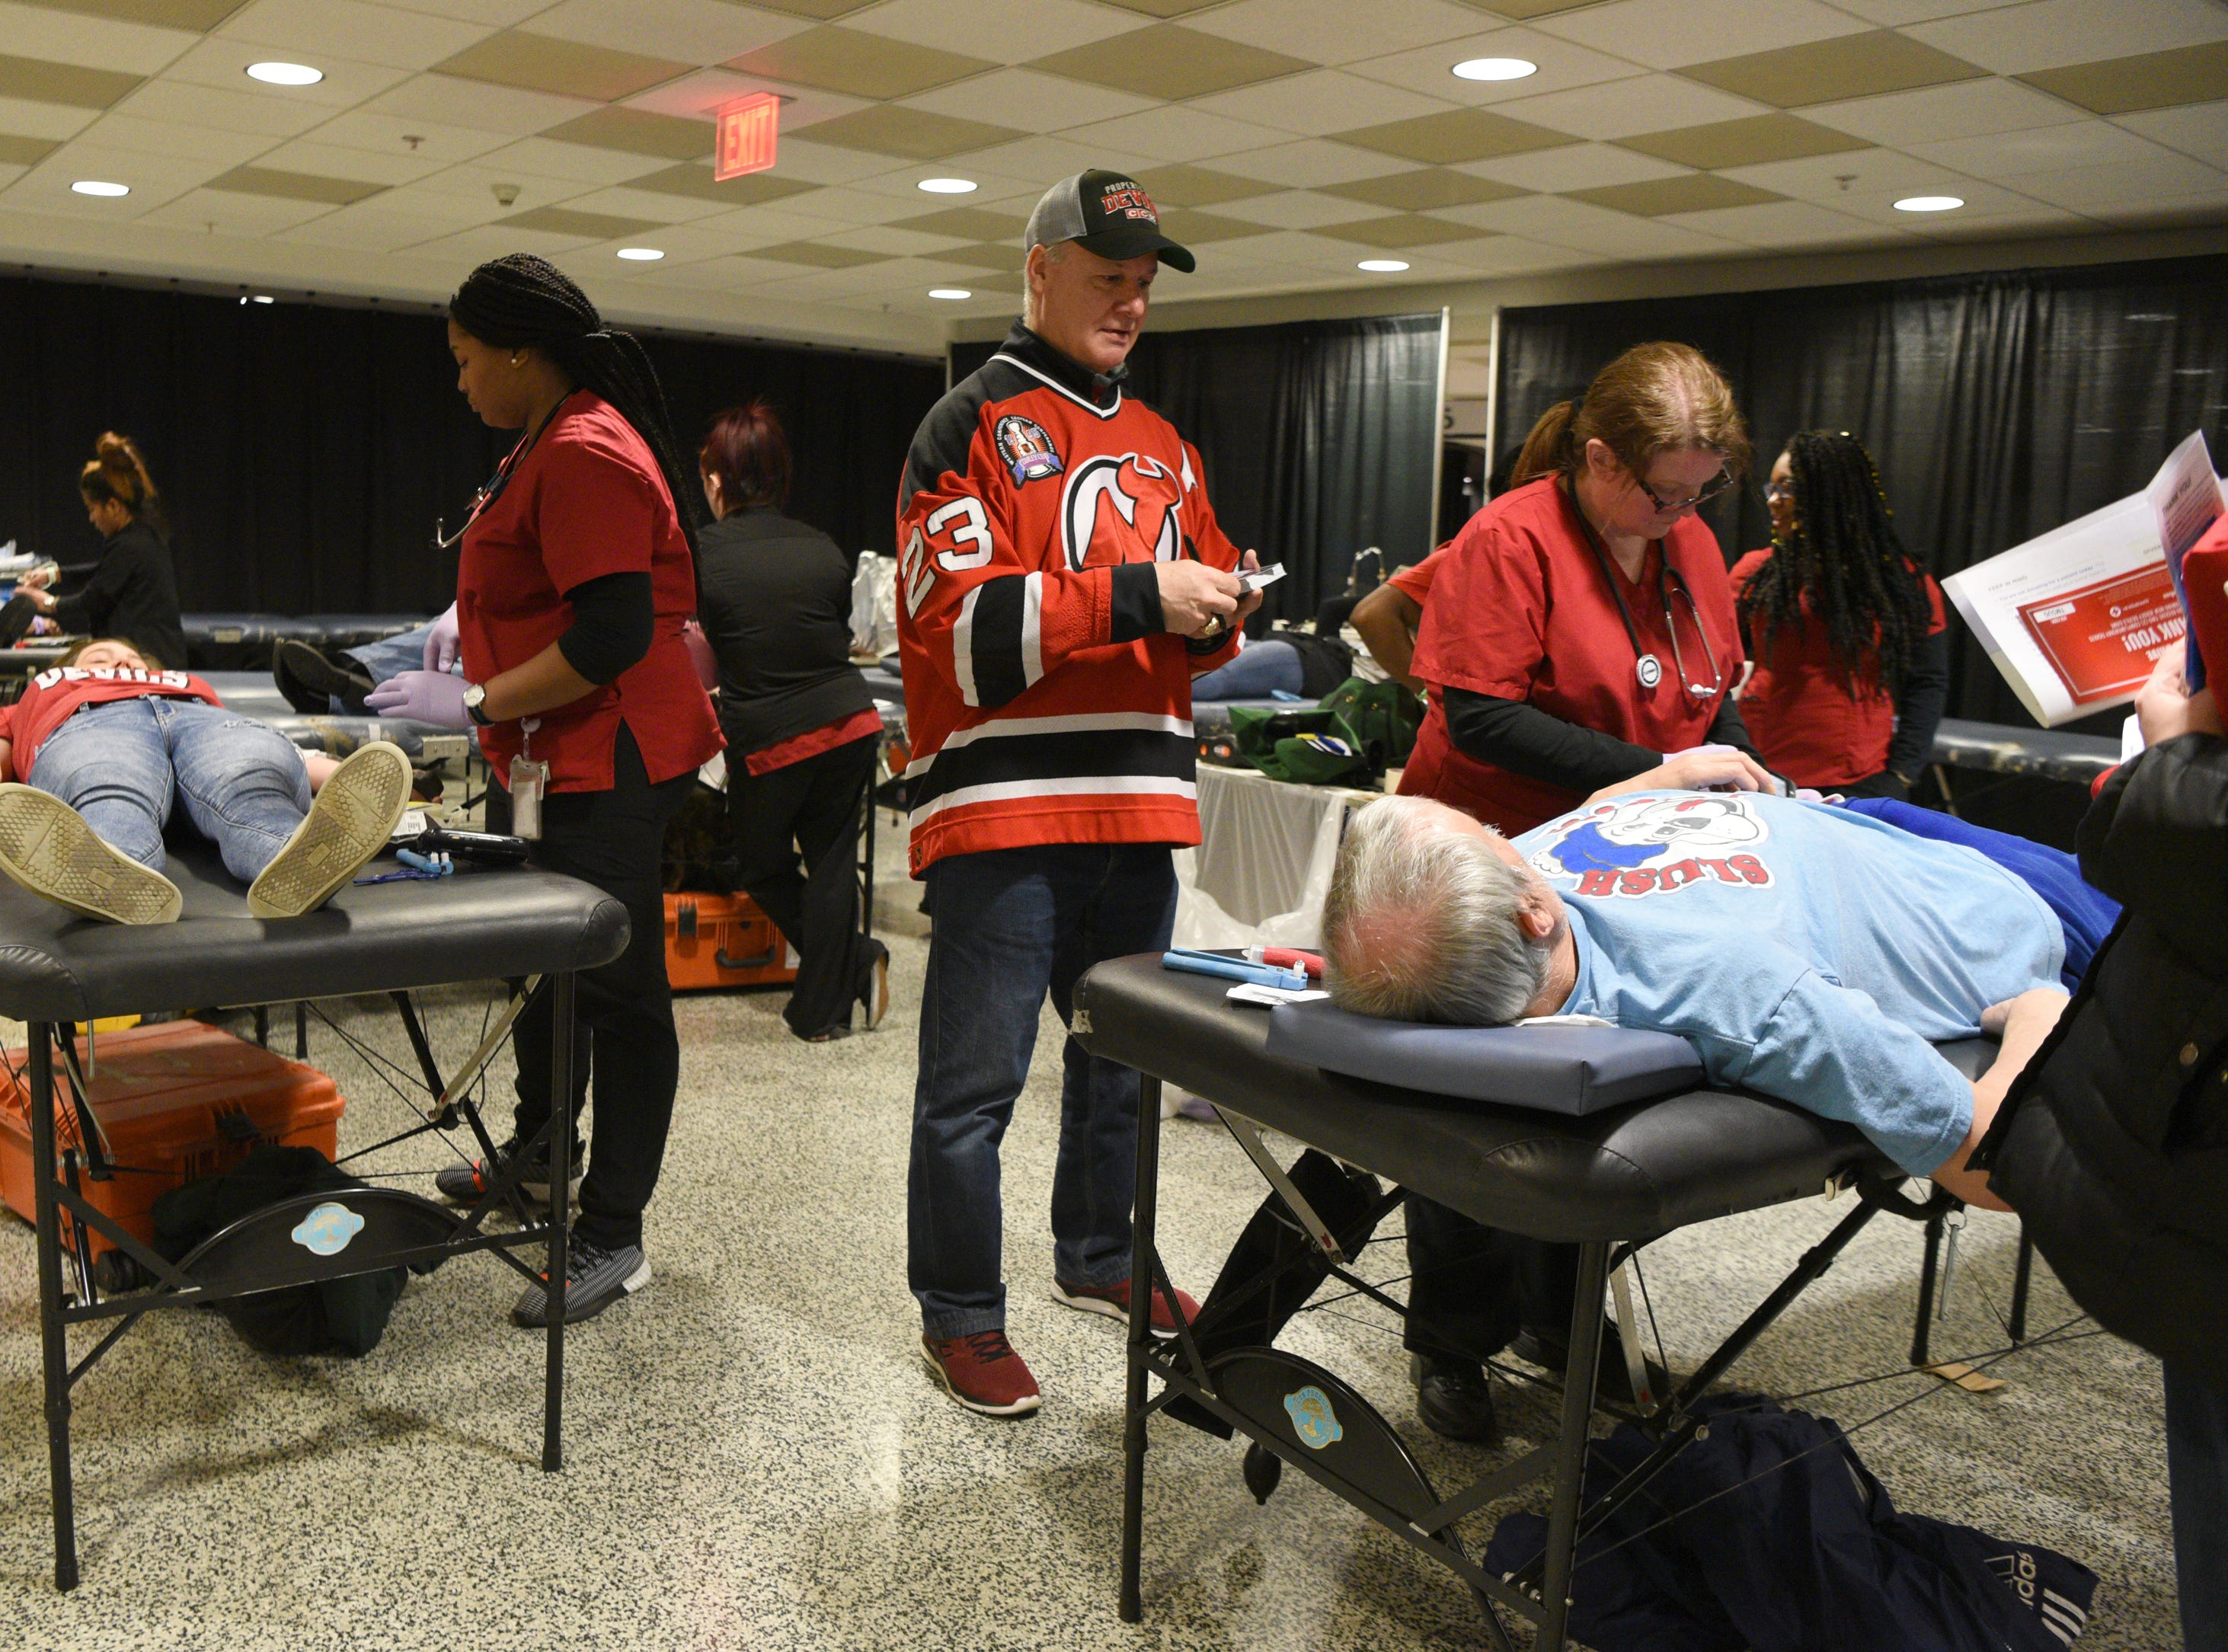 The New Jersey Devils and RWJBarnabas Health hosted their third annual blood drive in coordination with the American Red Cross on Sunday, March 10, 2019 at the Prudential Center in Newark.  Devils' alumni Bruce Driver, a member of the 1995 Devils Stanley Cup winning team, talks with a blood donor.